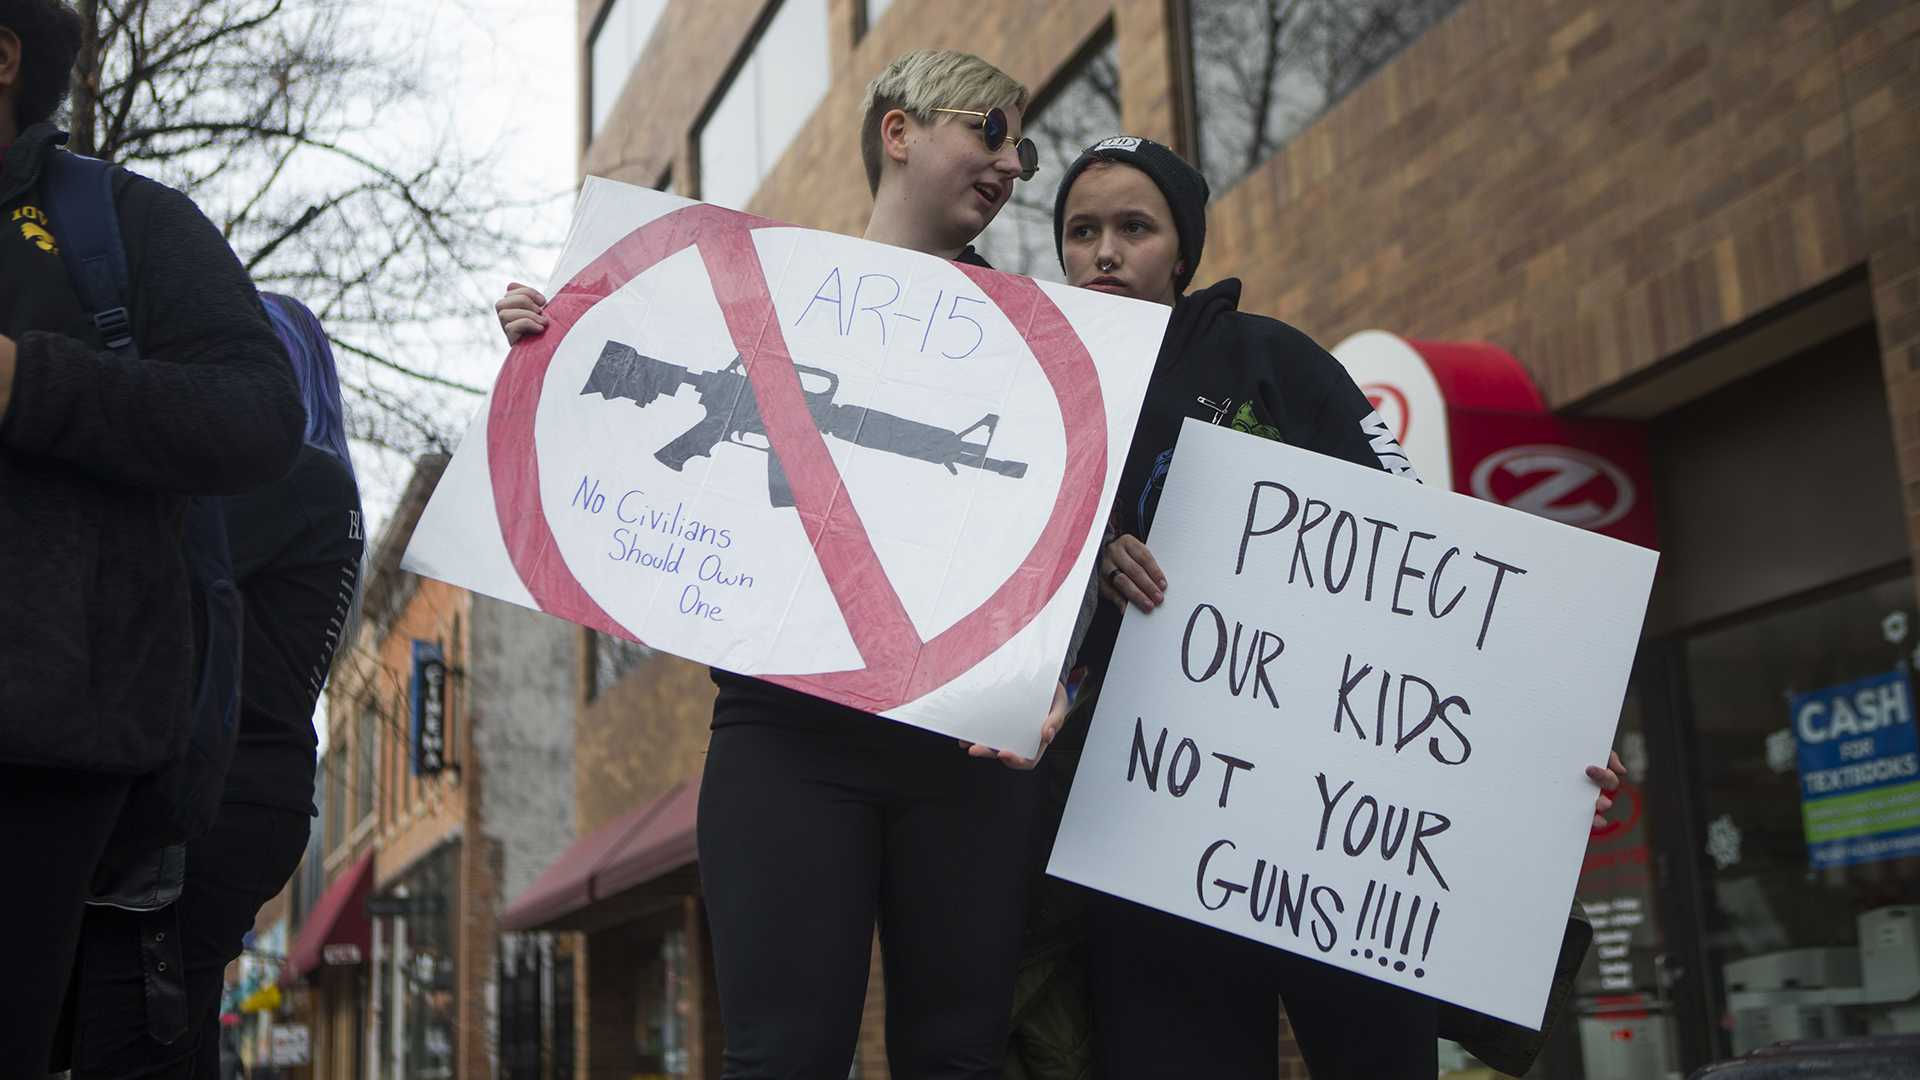 Lyft offers free rides for March for Our Lives attendees